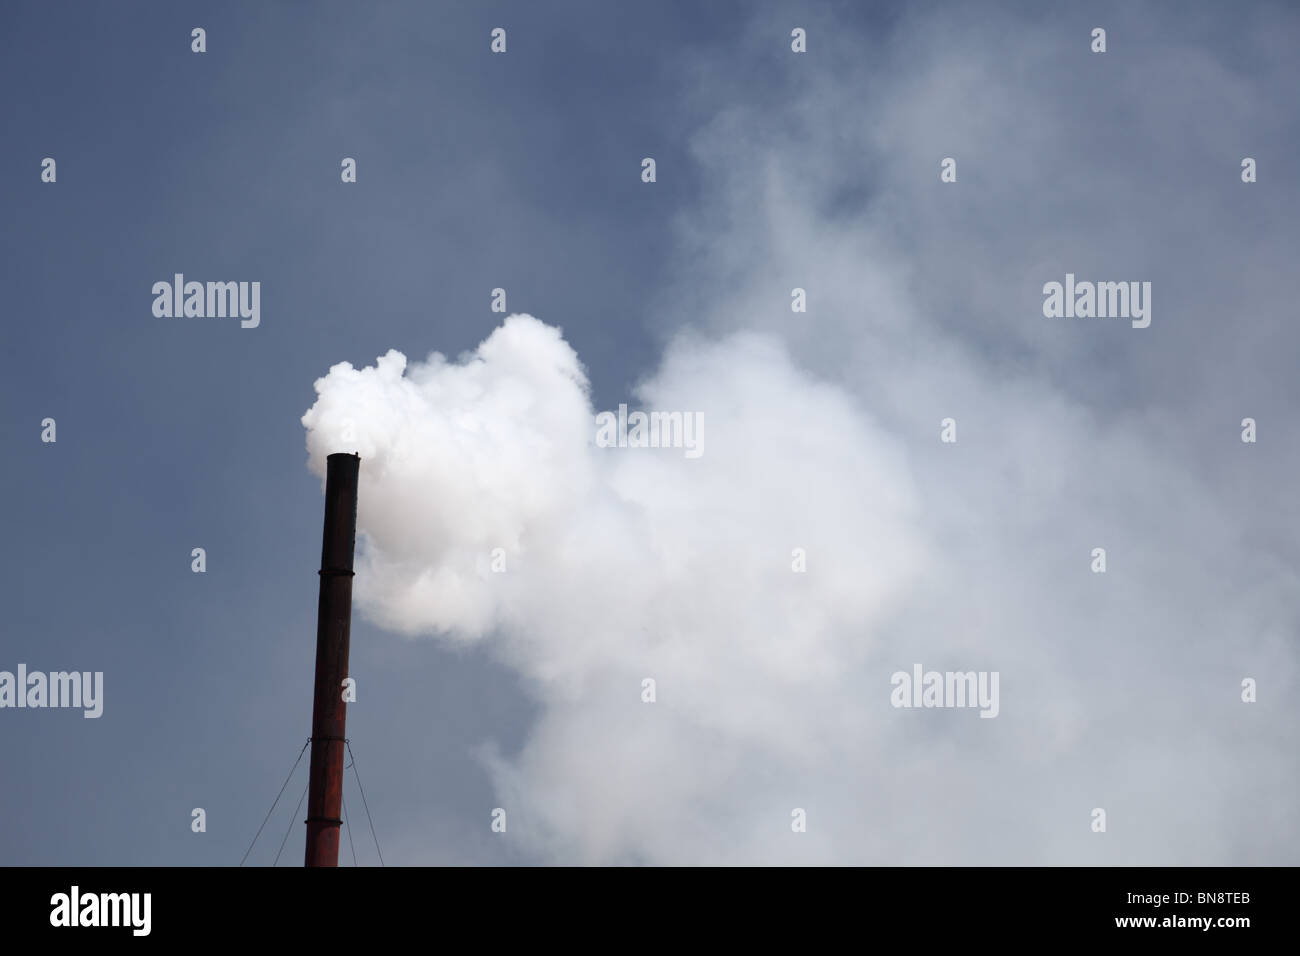 Factory chimney blowing co2 into atmosphere - Stock Image